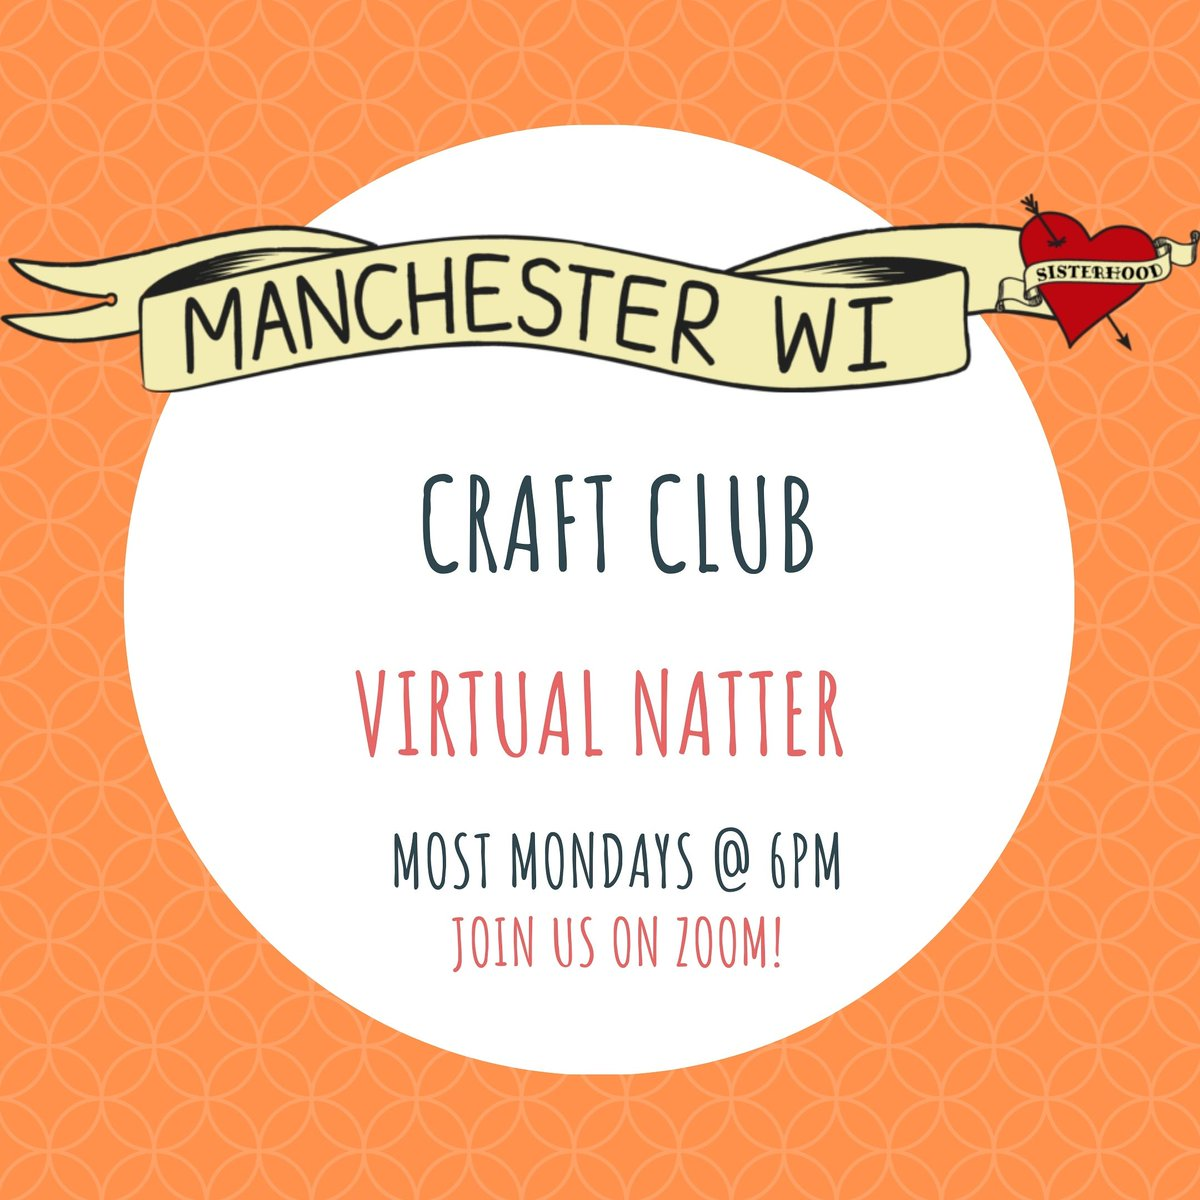 Happy long weekend! (/long year 😅) It may be a Bank Holiday but craft club will still be having their usual Monday craft and natter this evening. Register here manchesterwi.org.uk/events-1/craft… and bring your latest craft project along!